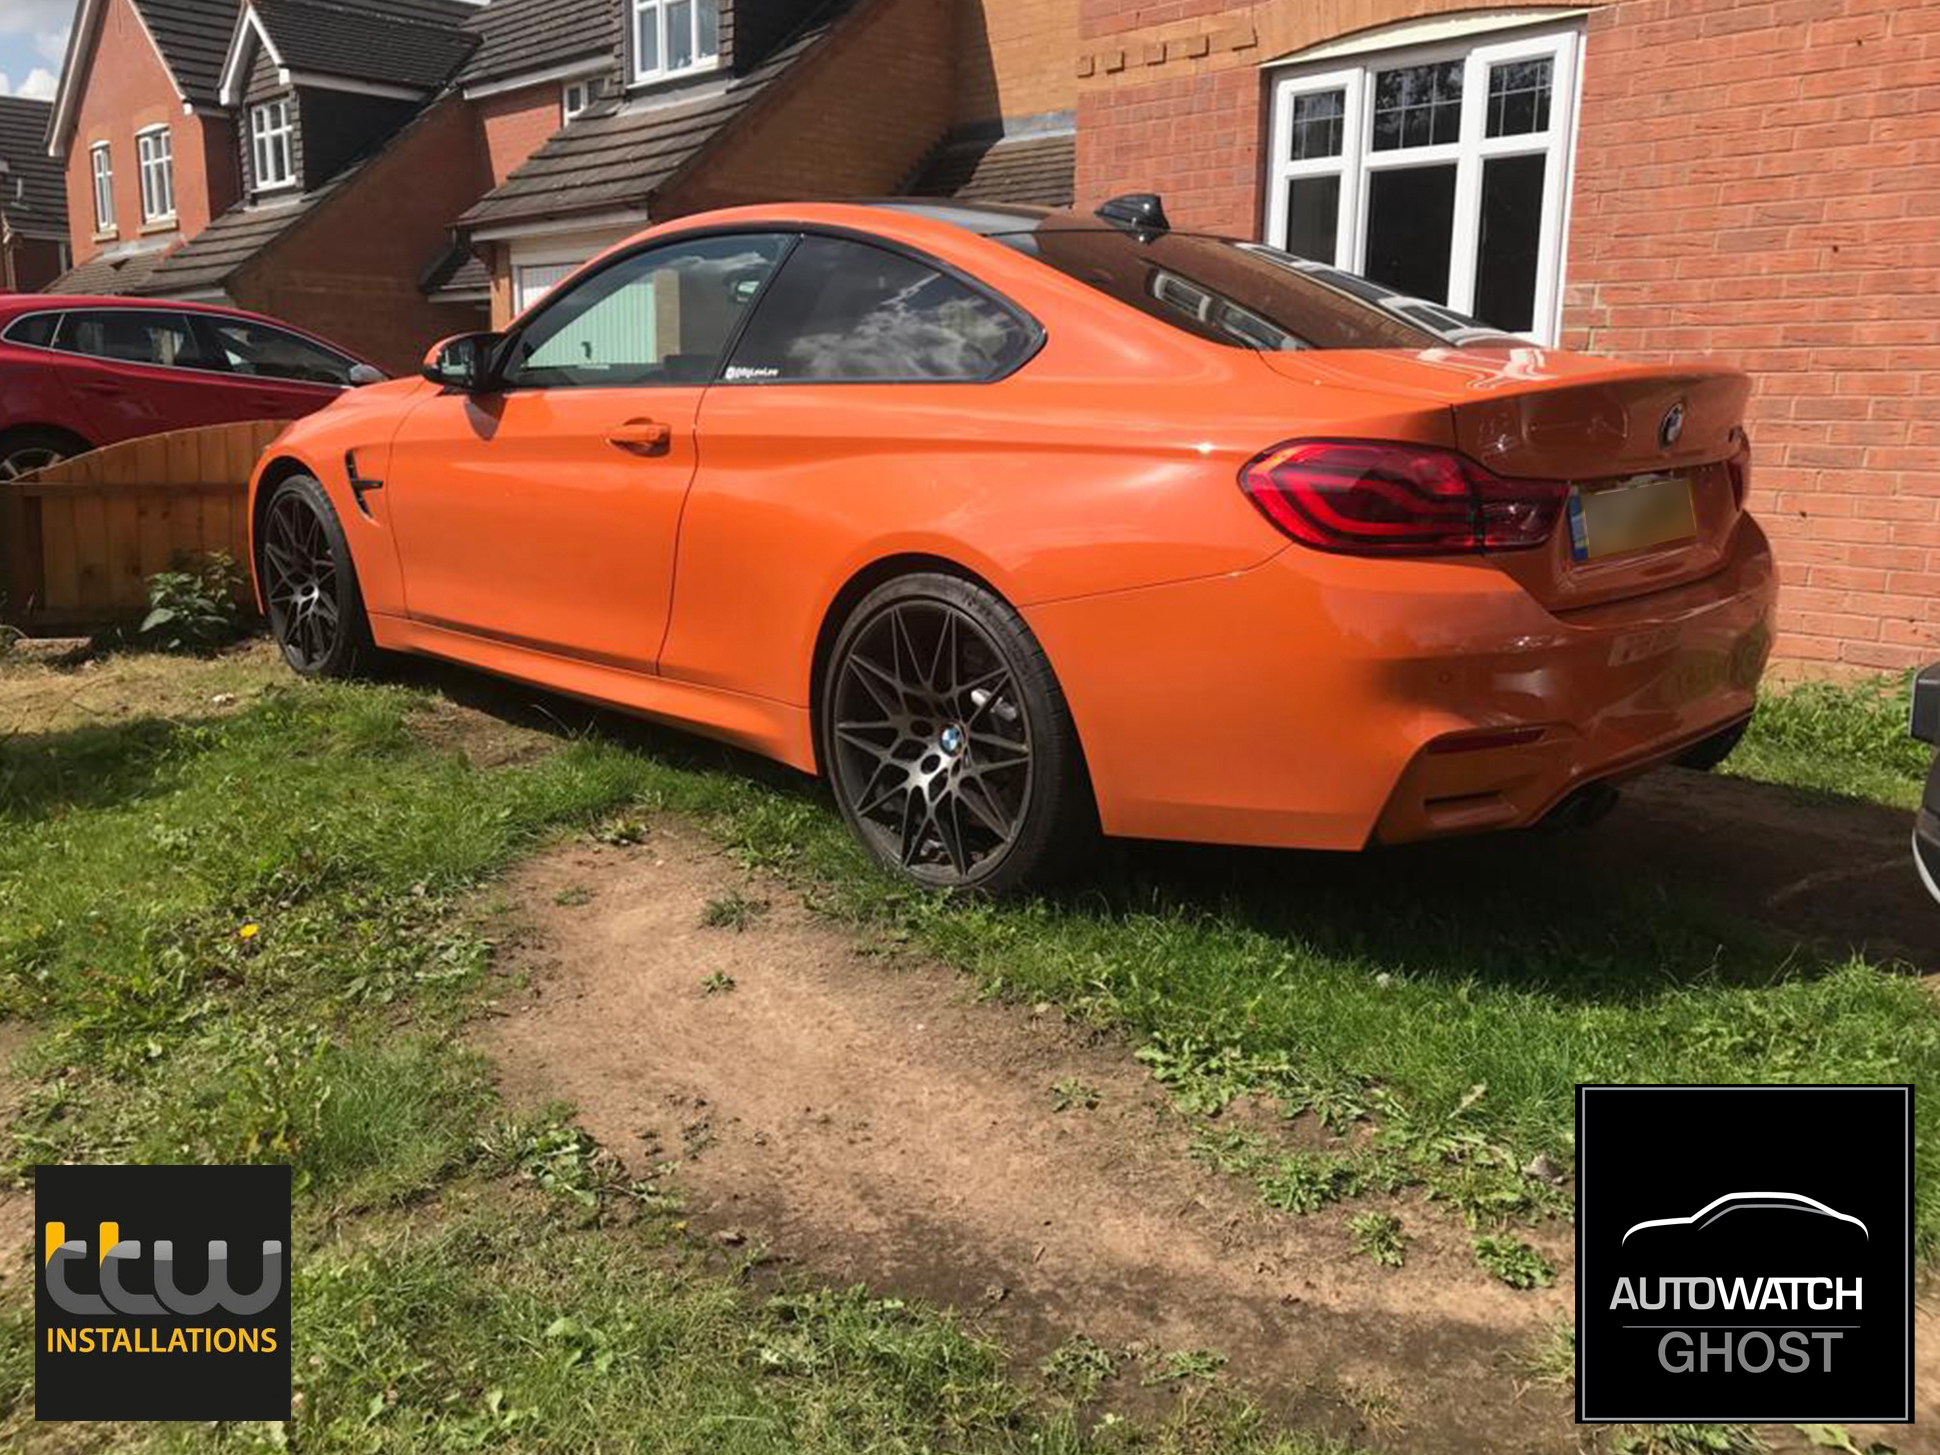 BMW M3 Autowatch Ghost 2 protected By TTW Installations